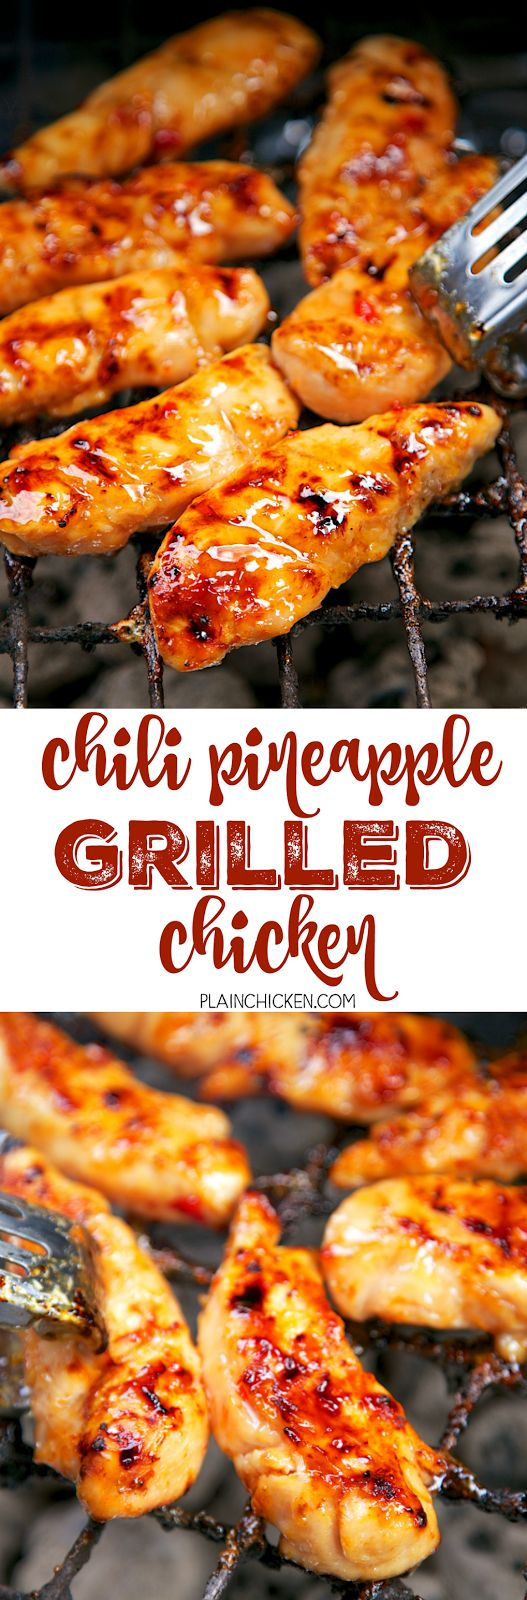 Chili Pineapple Grilled Chicken - only simple 4 ingredients! Chicken, chili…